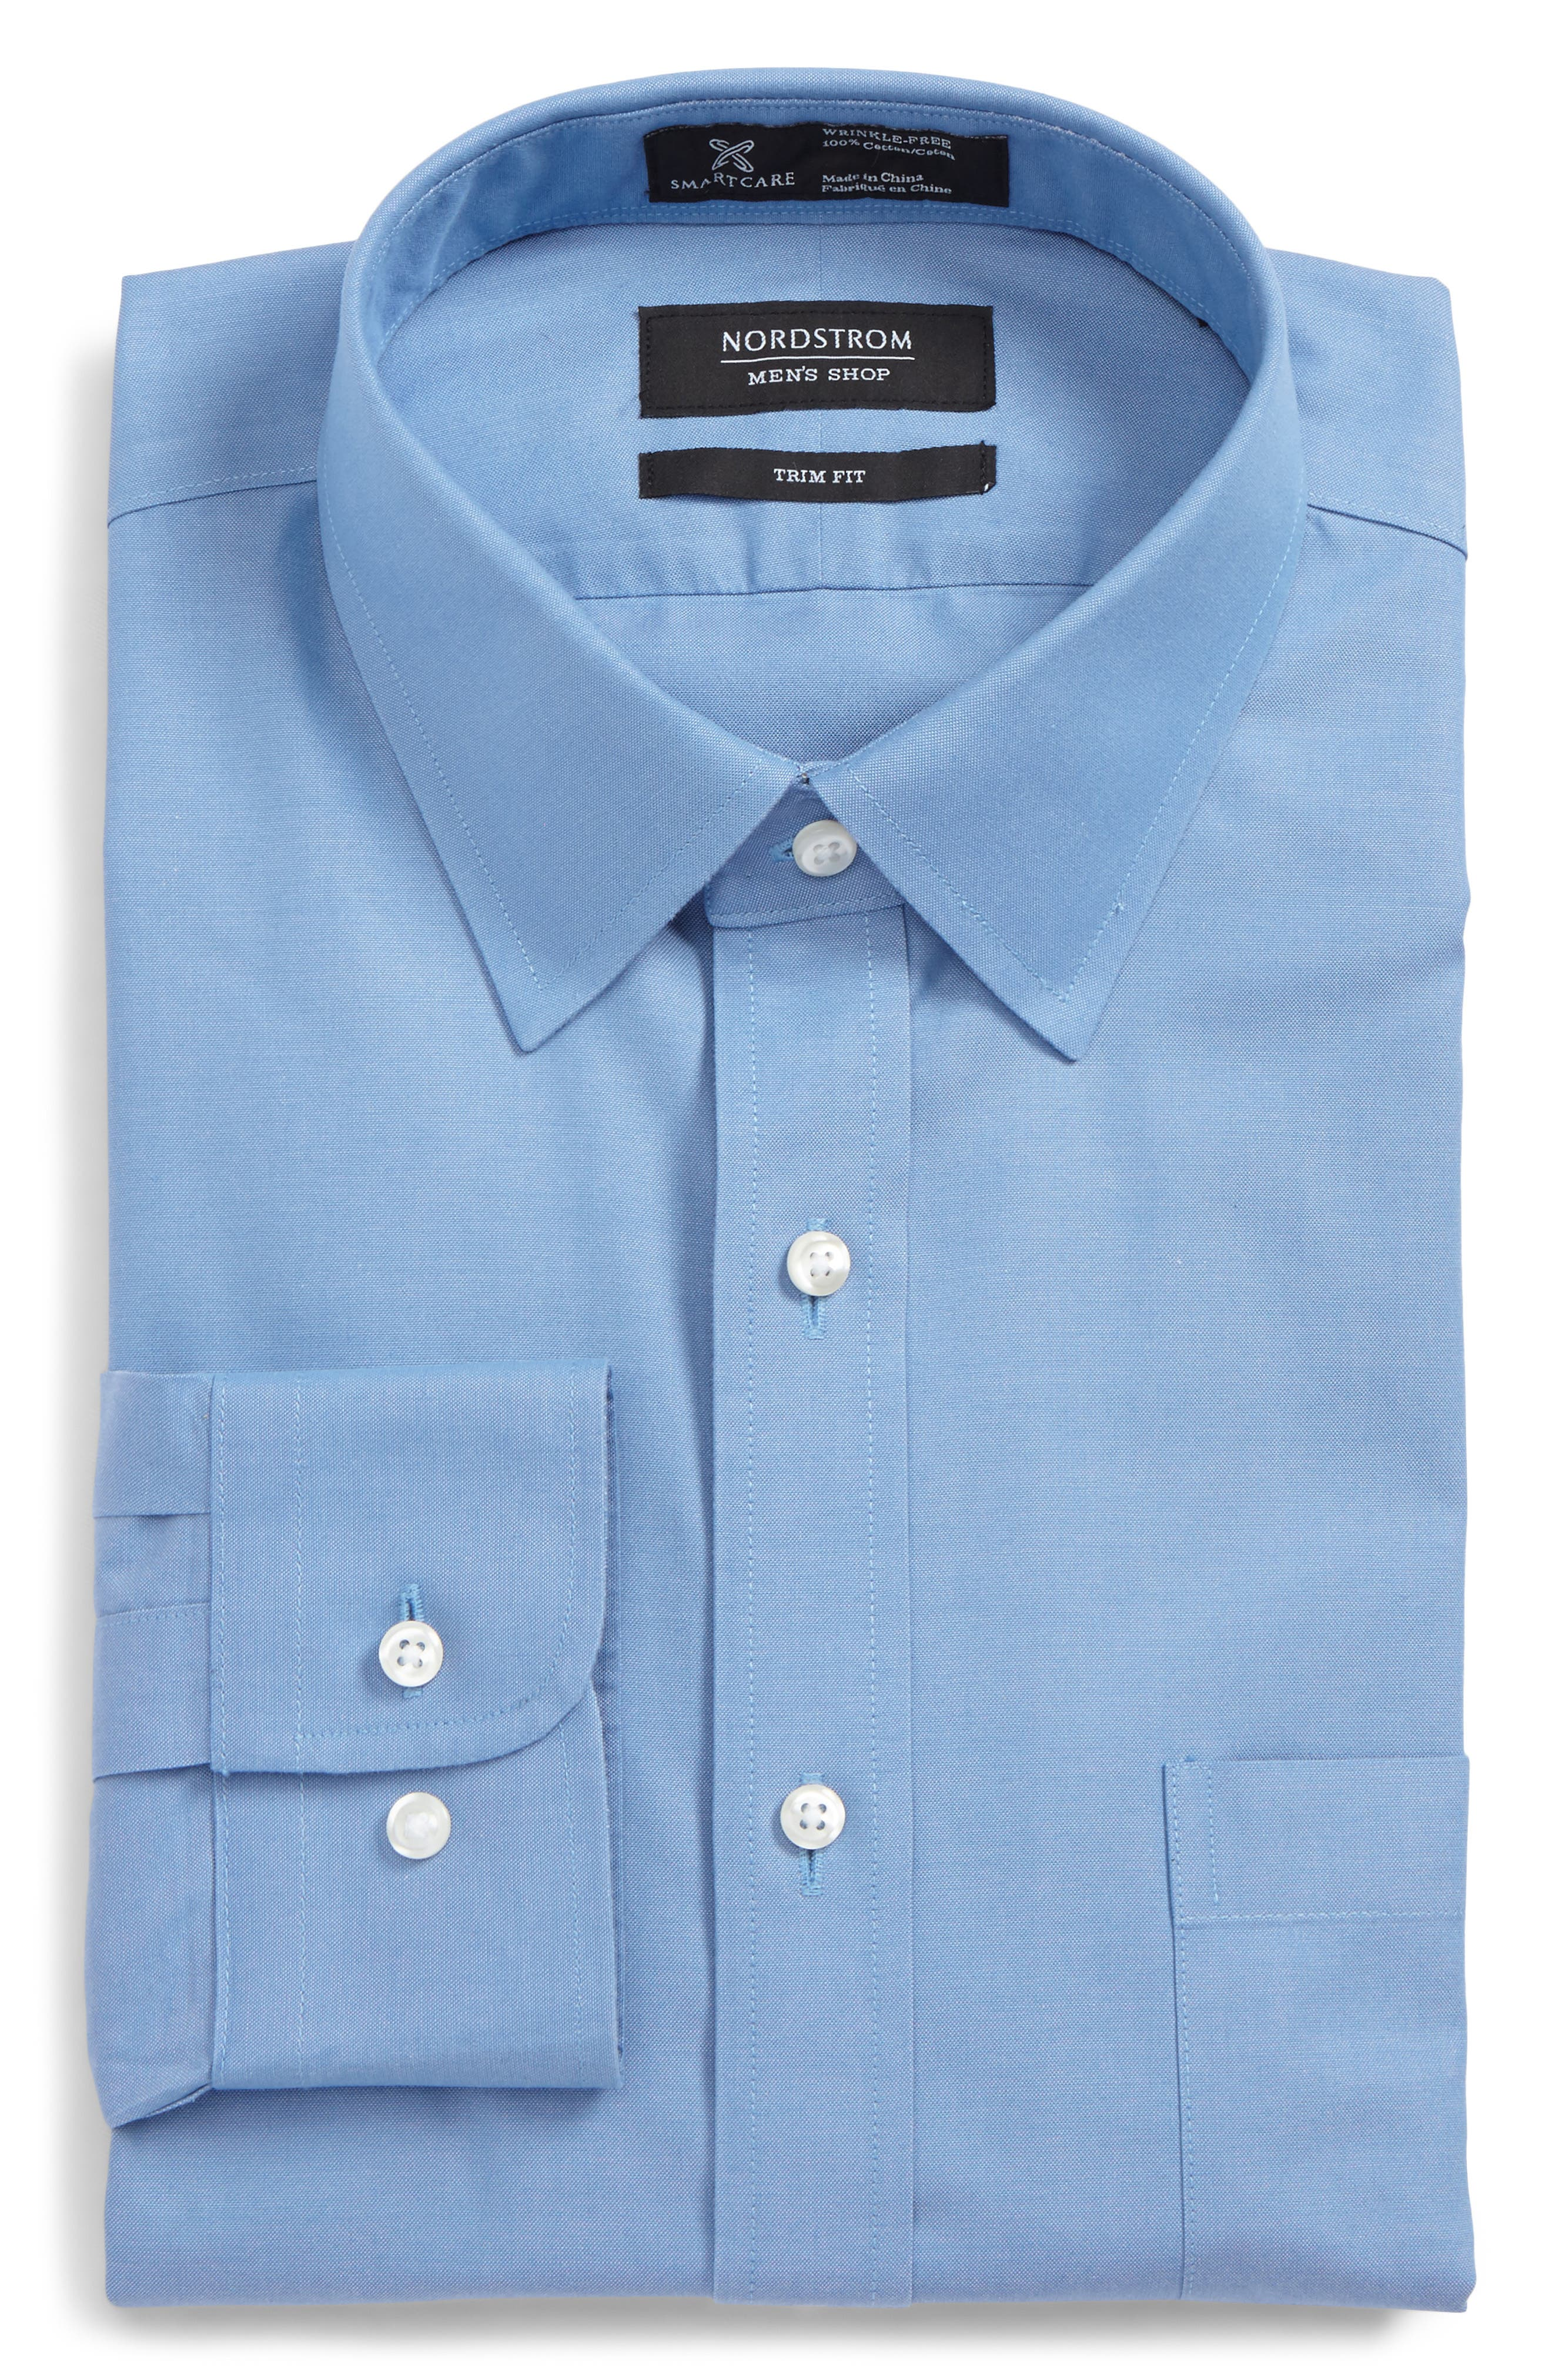 Nordstrom Shop Smartcare(TM) Trim Fit Solid Dress Shirt, 5.5 34/35 - Blue